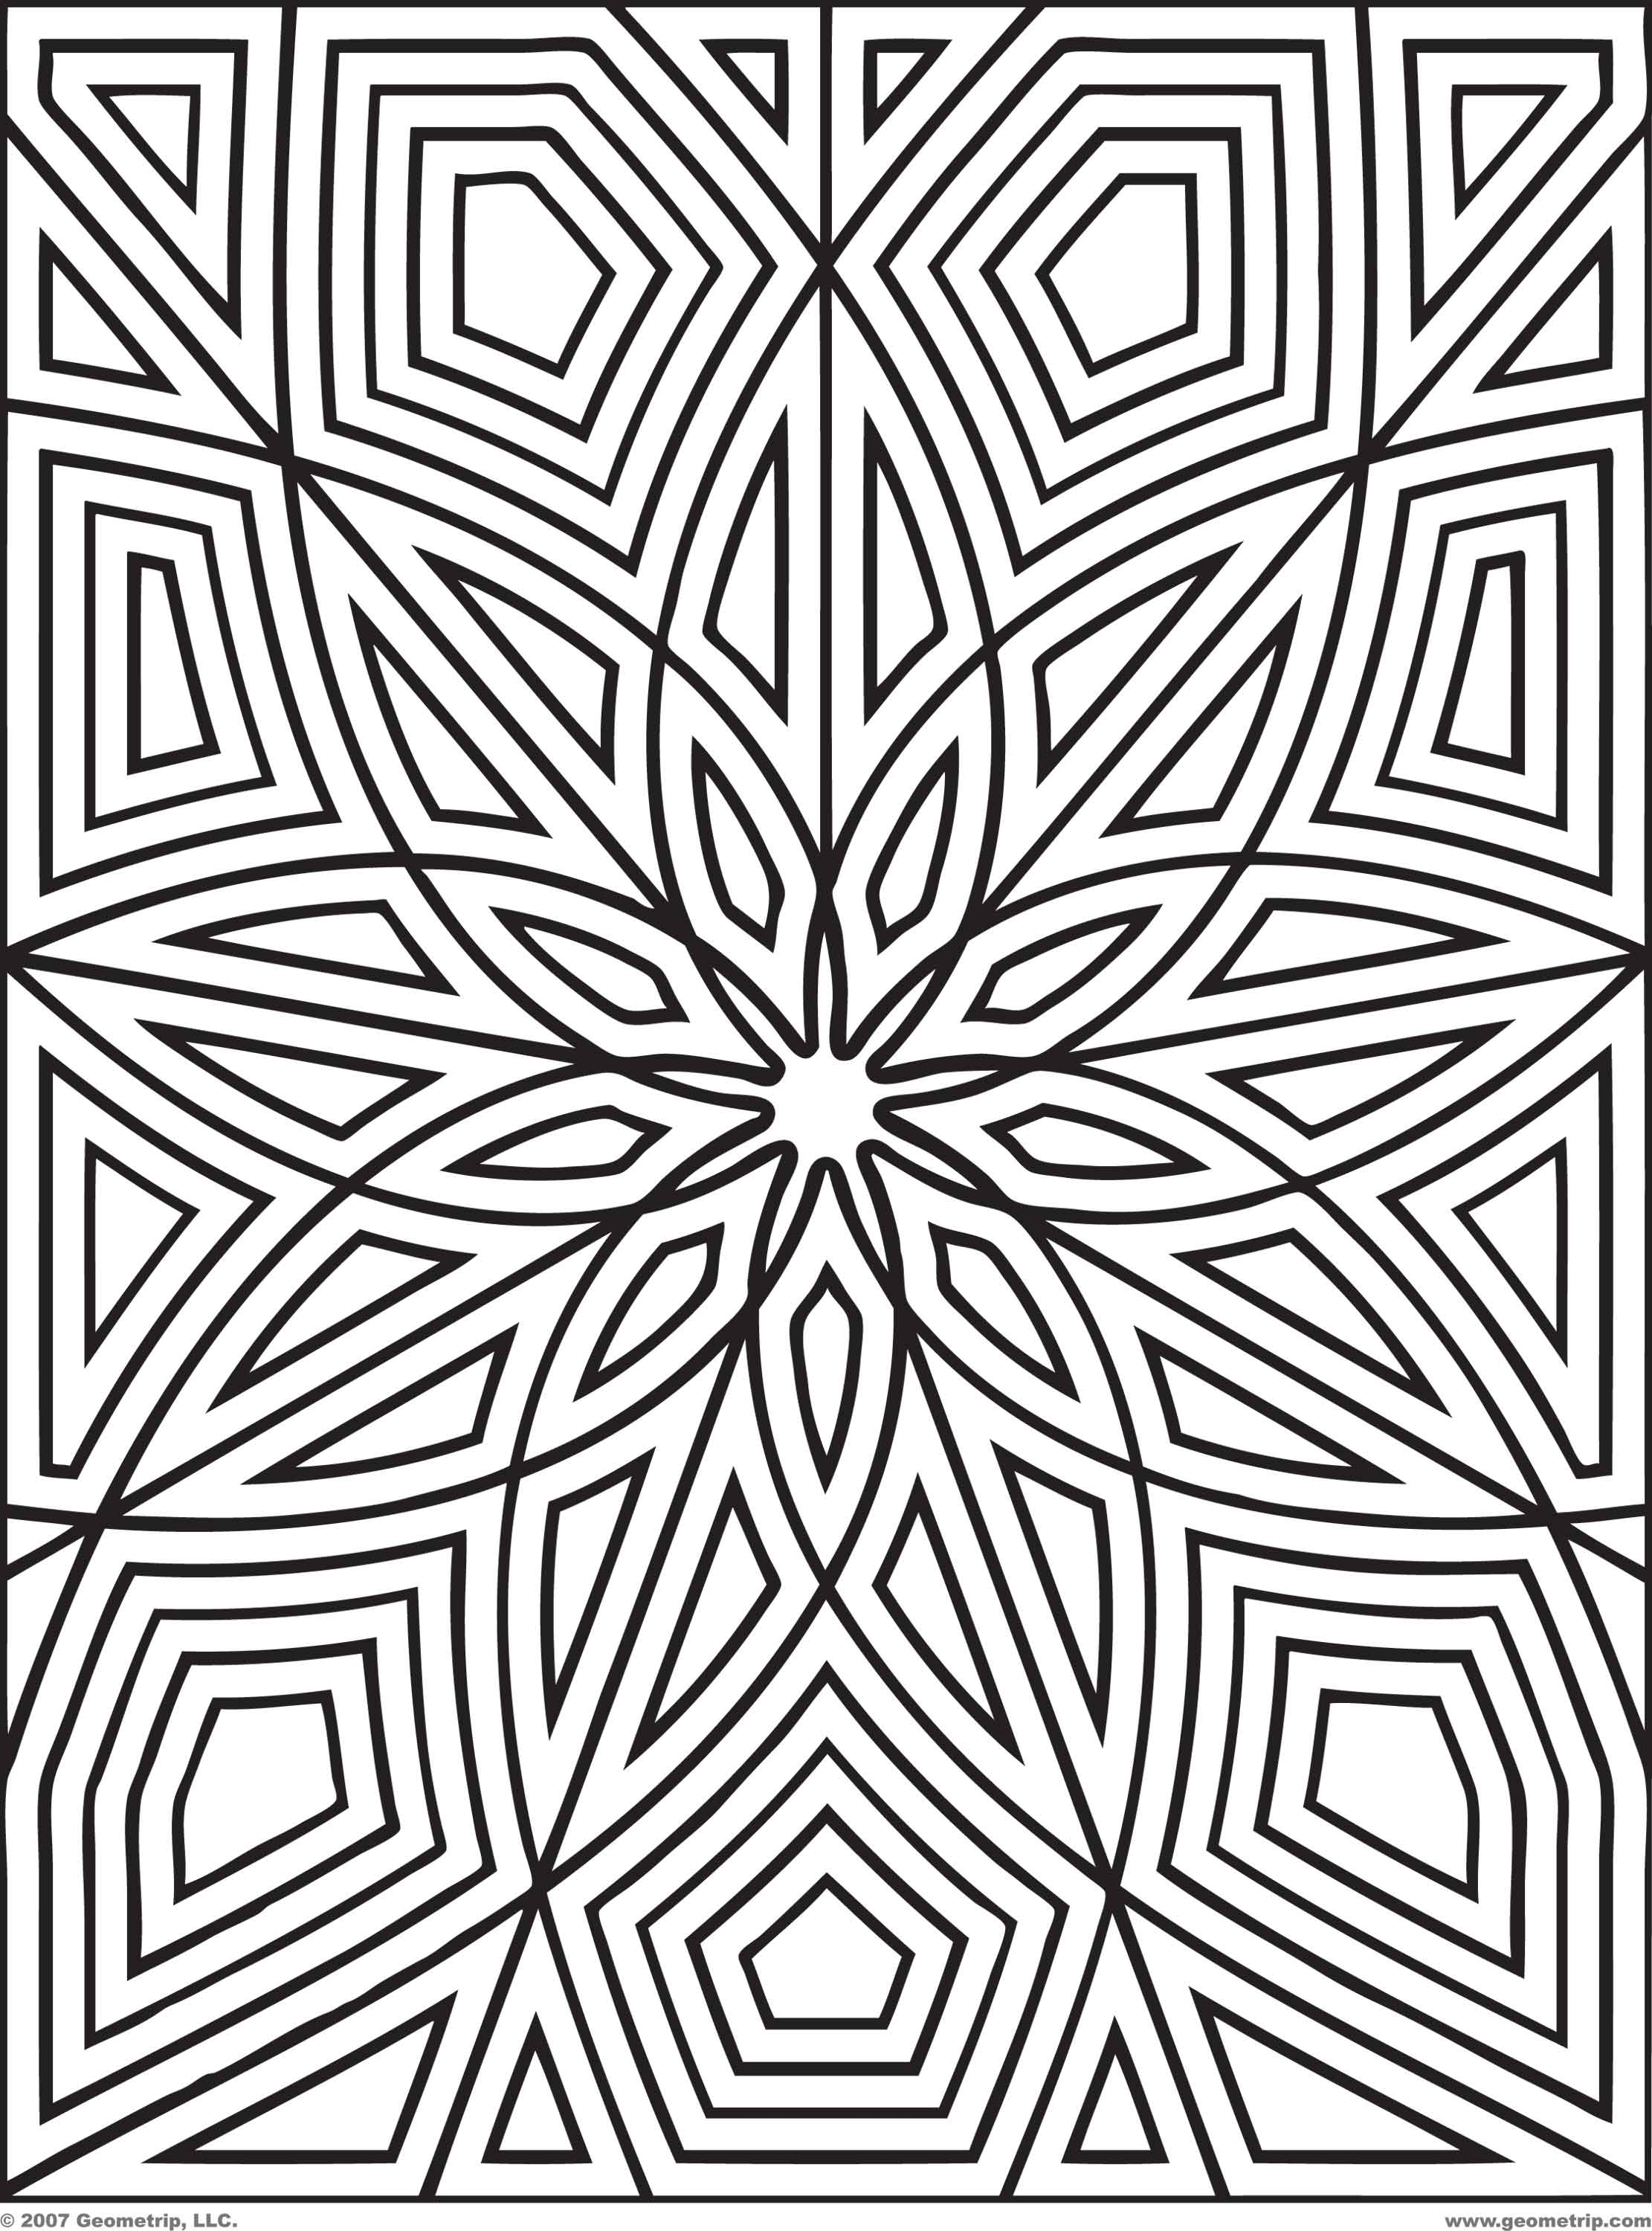 pattern coloring pages - pattern coloring pages for adults